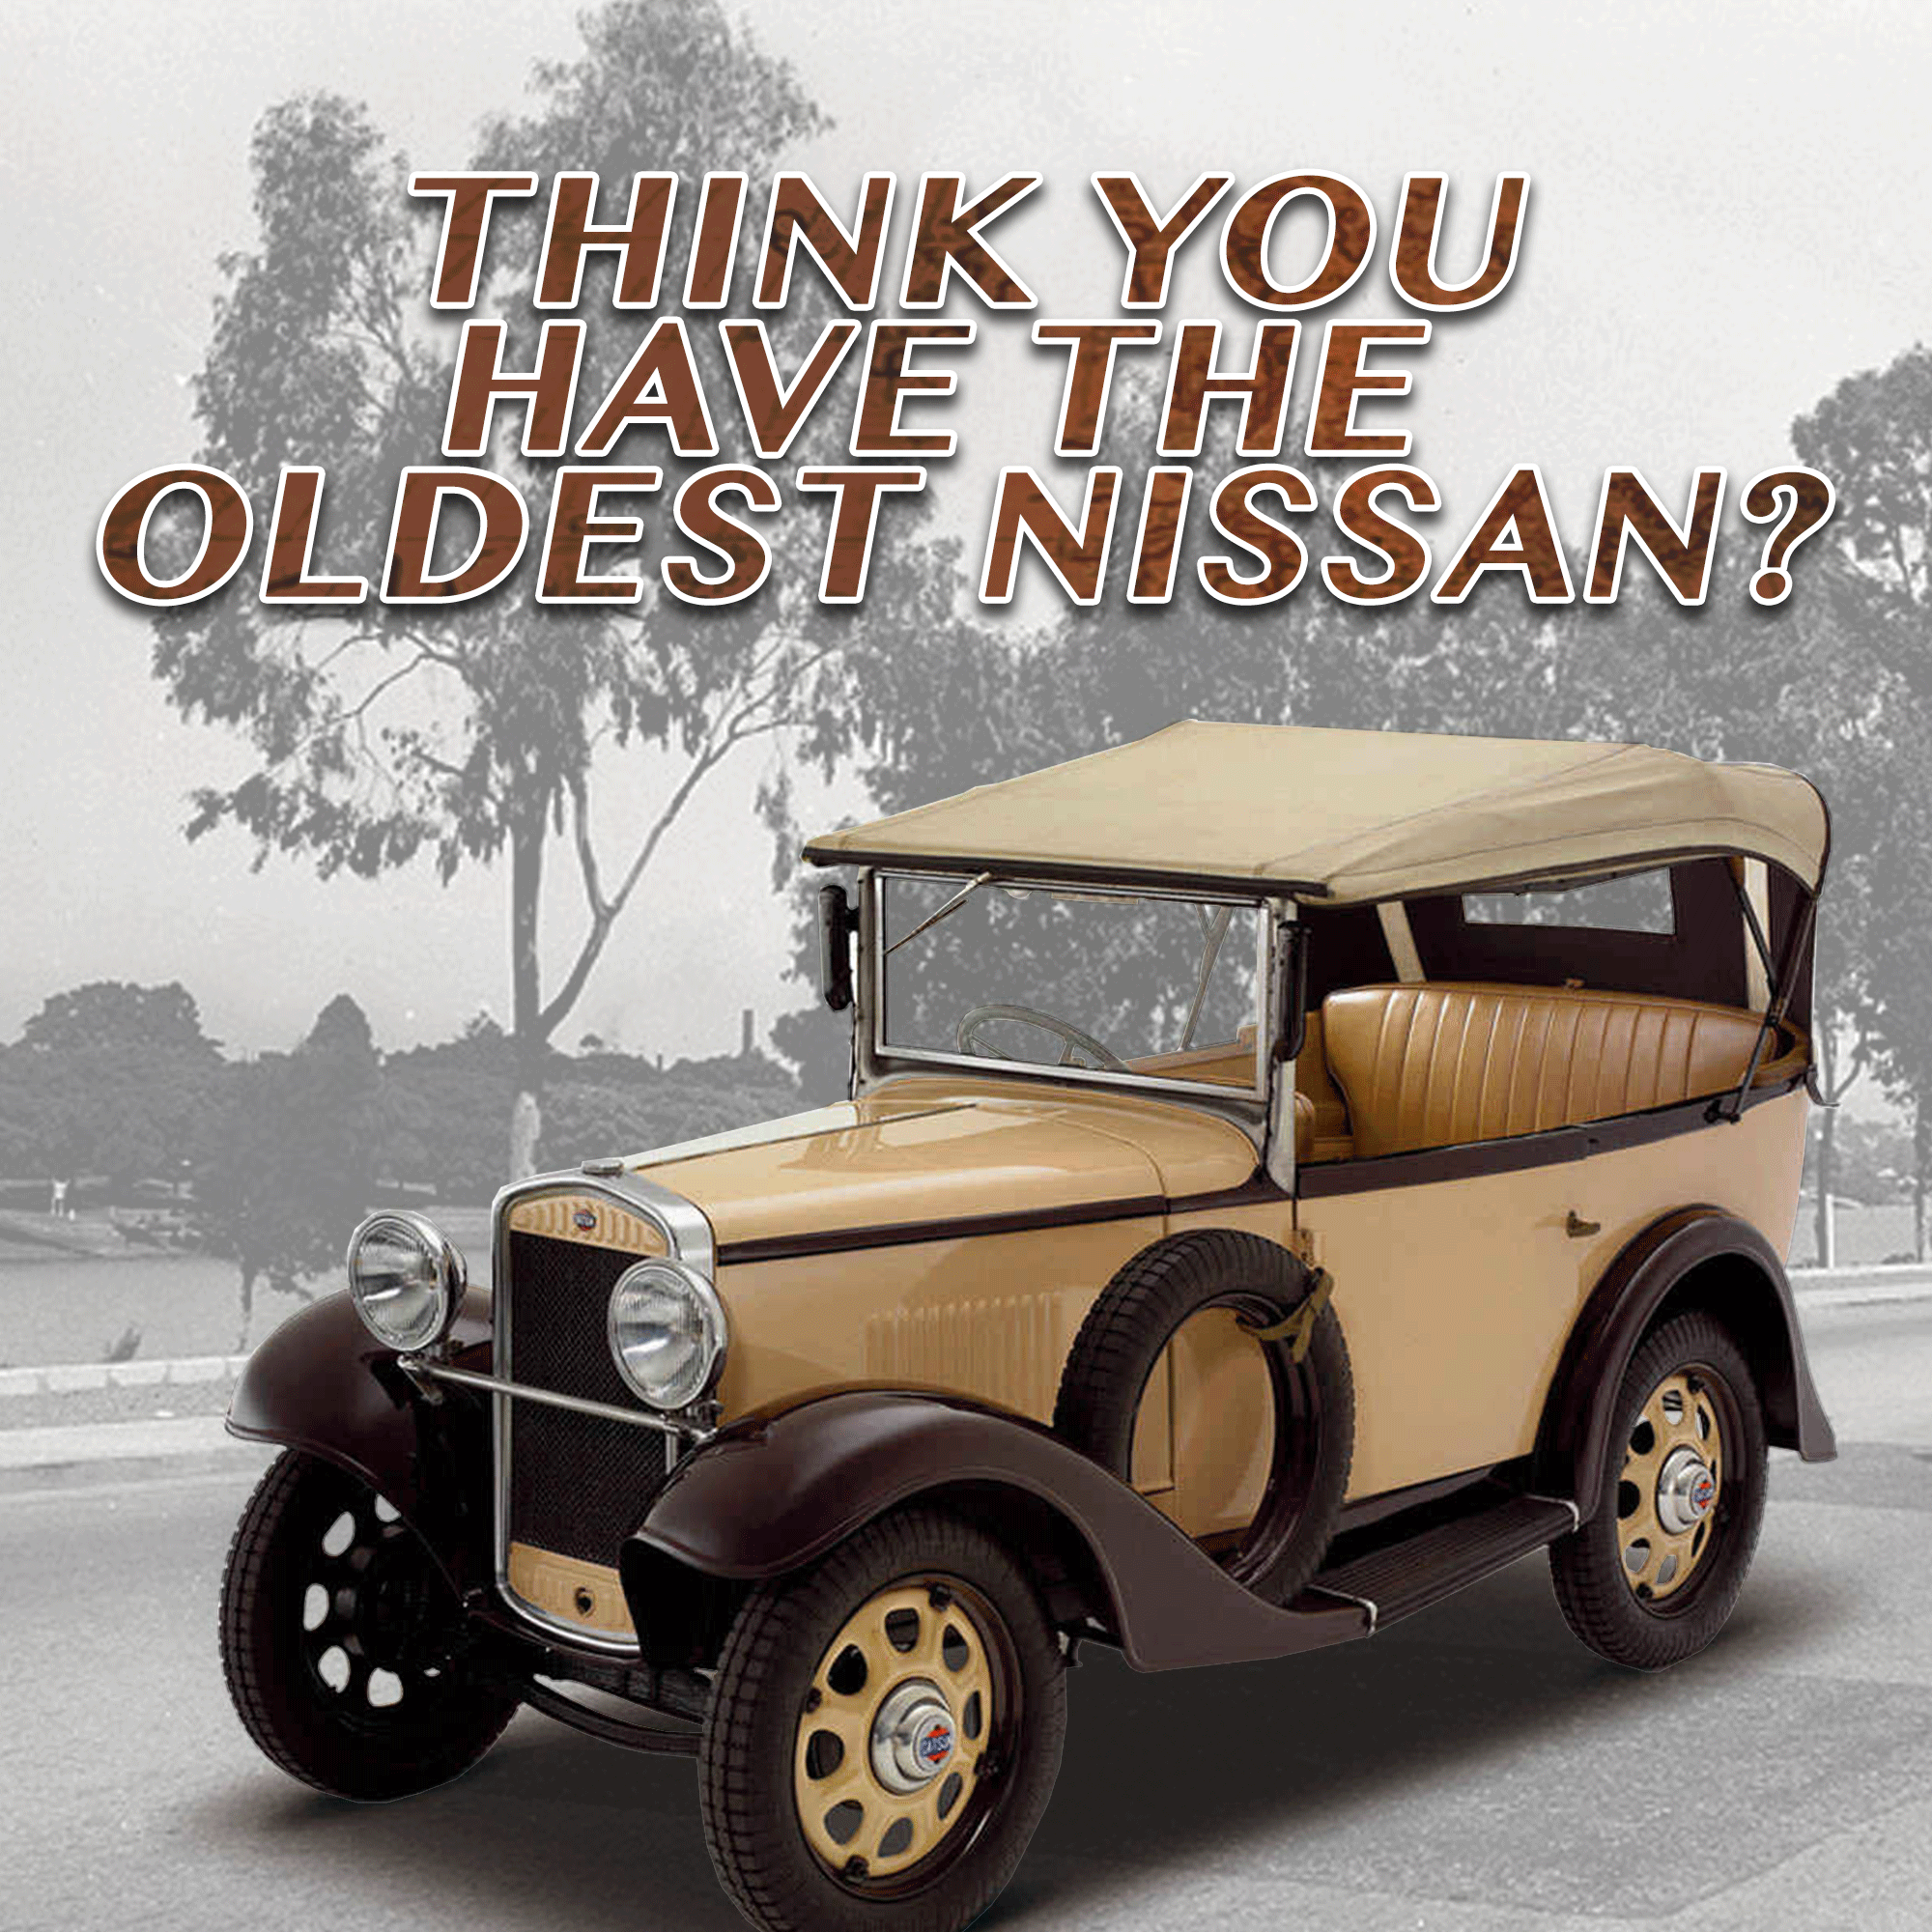 Throwback thursday who owns the oldest nissan post your make